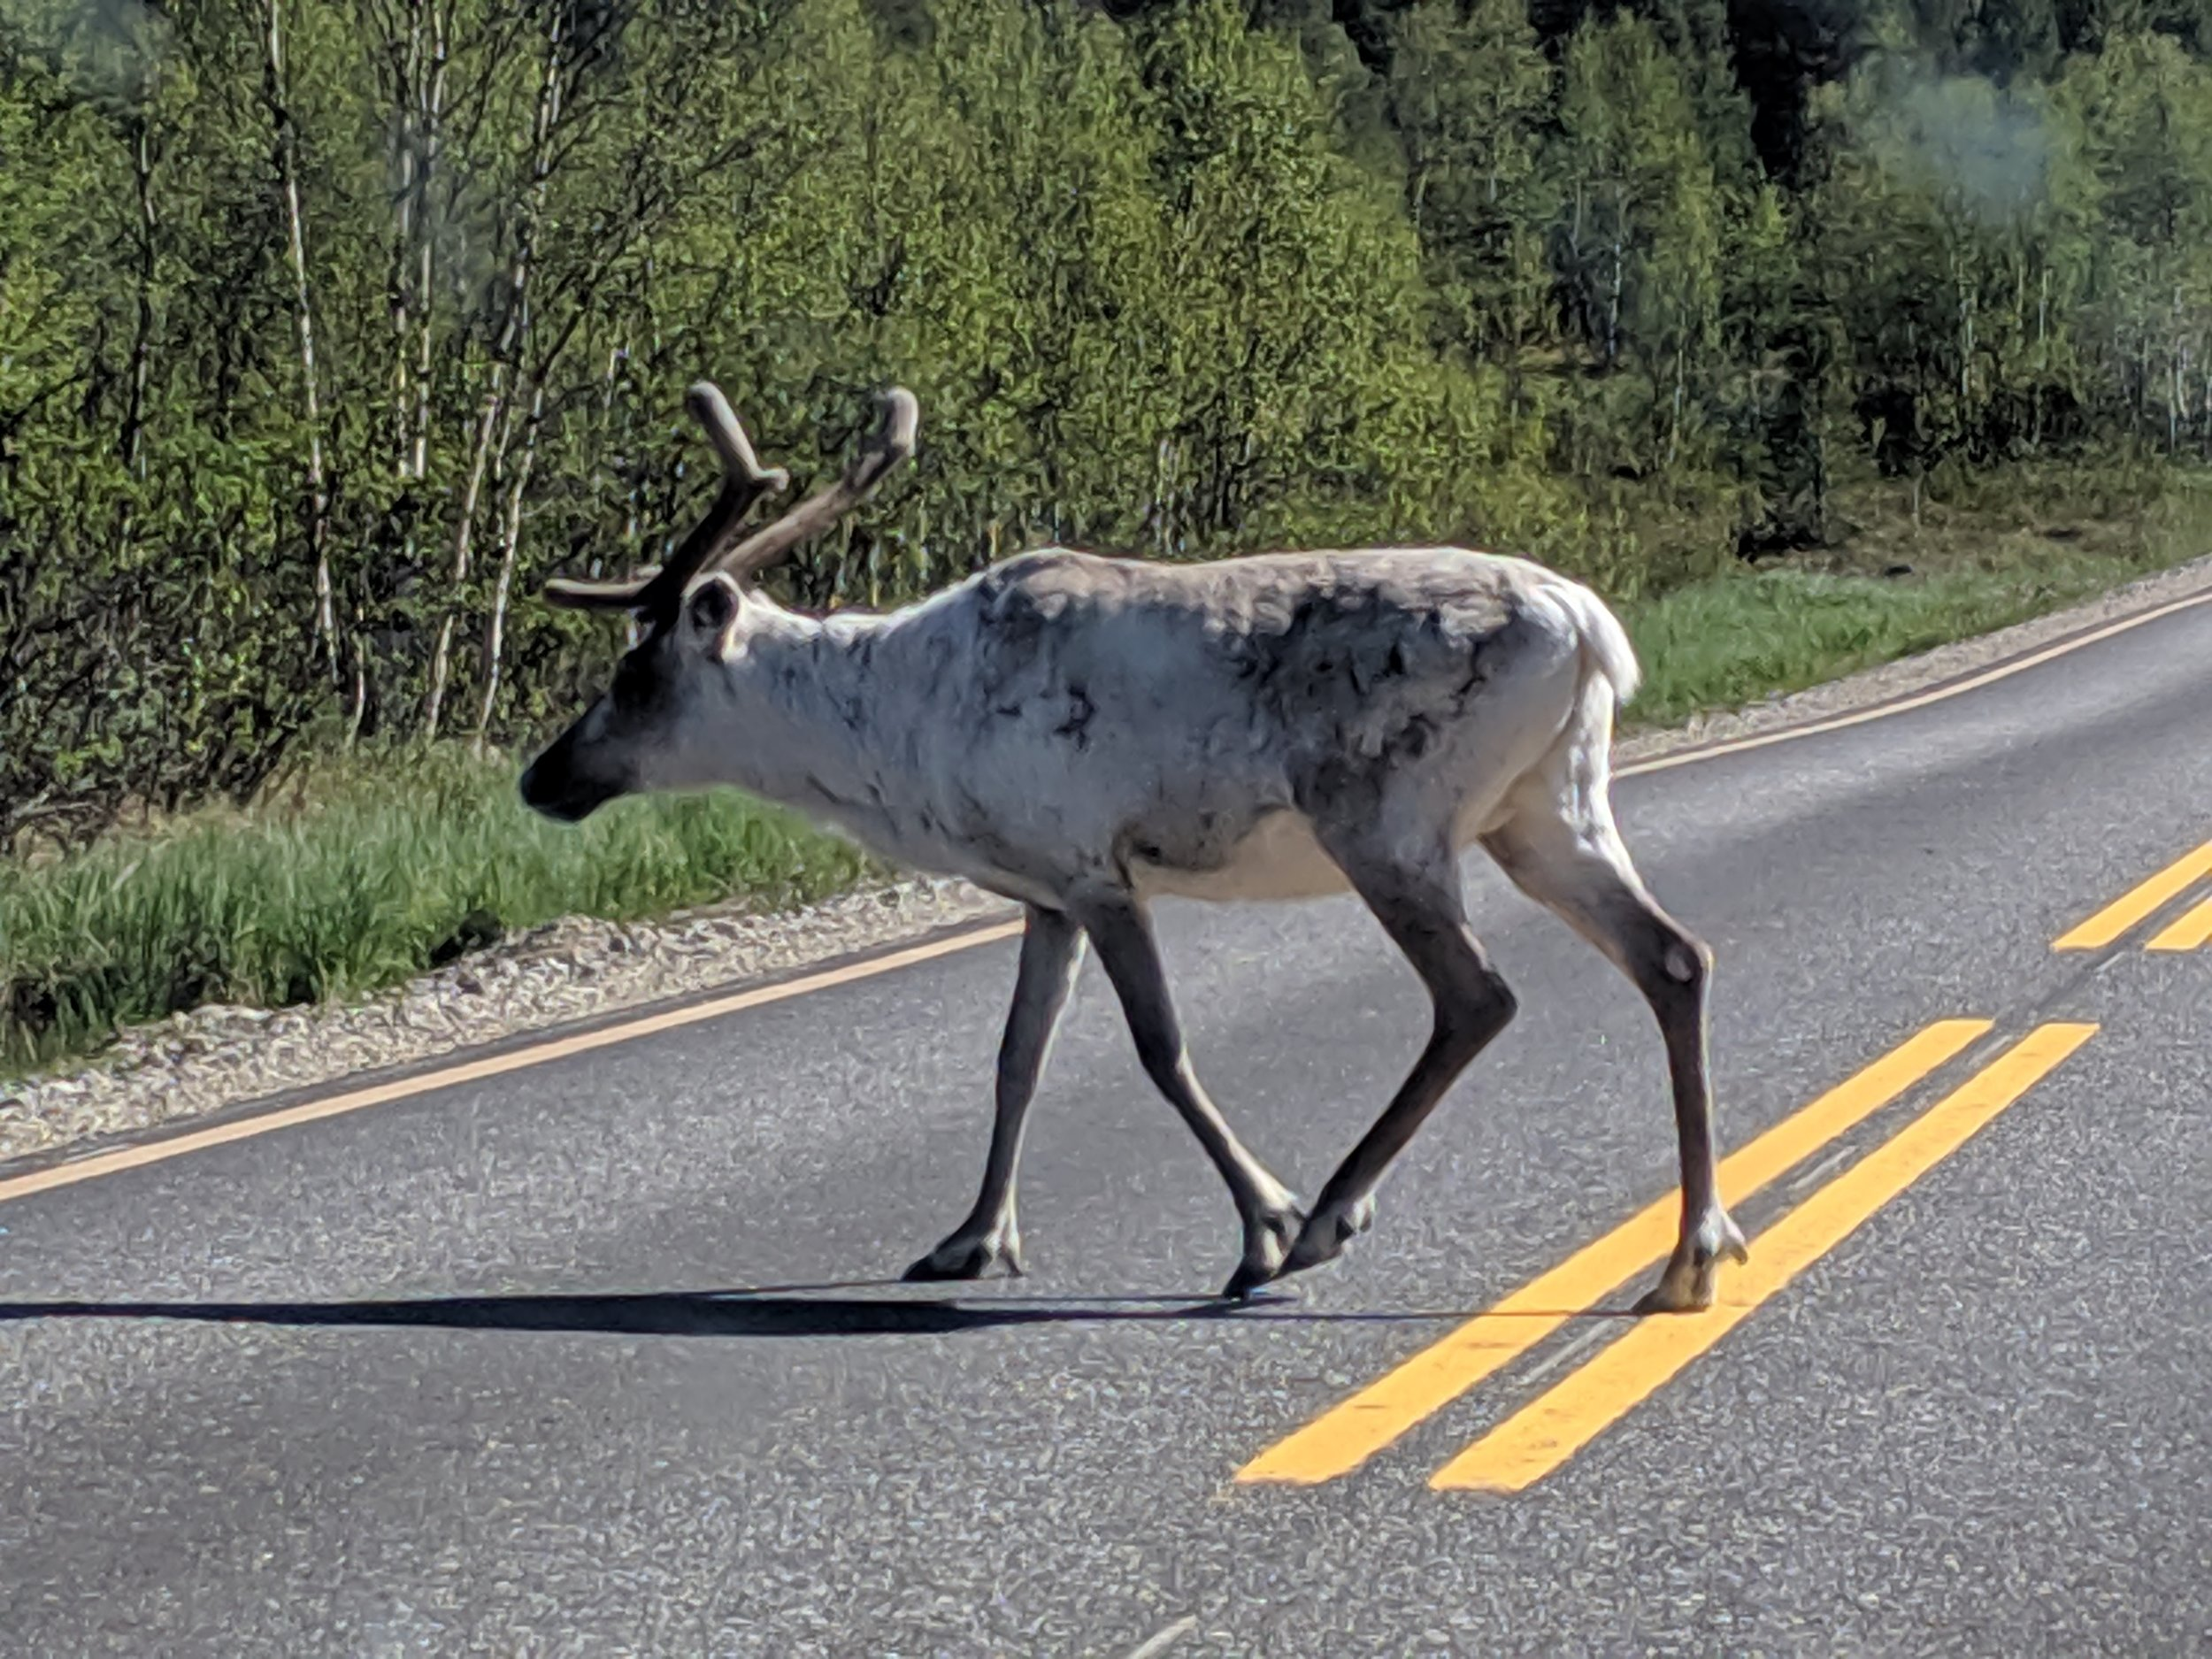 In northern Finland the reindeer are everywhere. And since the Sami people domesticated them they have no fear of humans. This one was just casually walking across the road in no hurry to get out of our way.